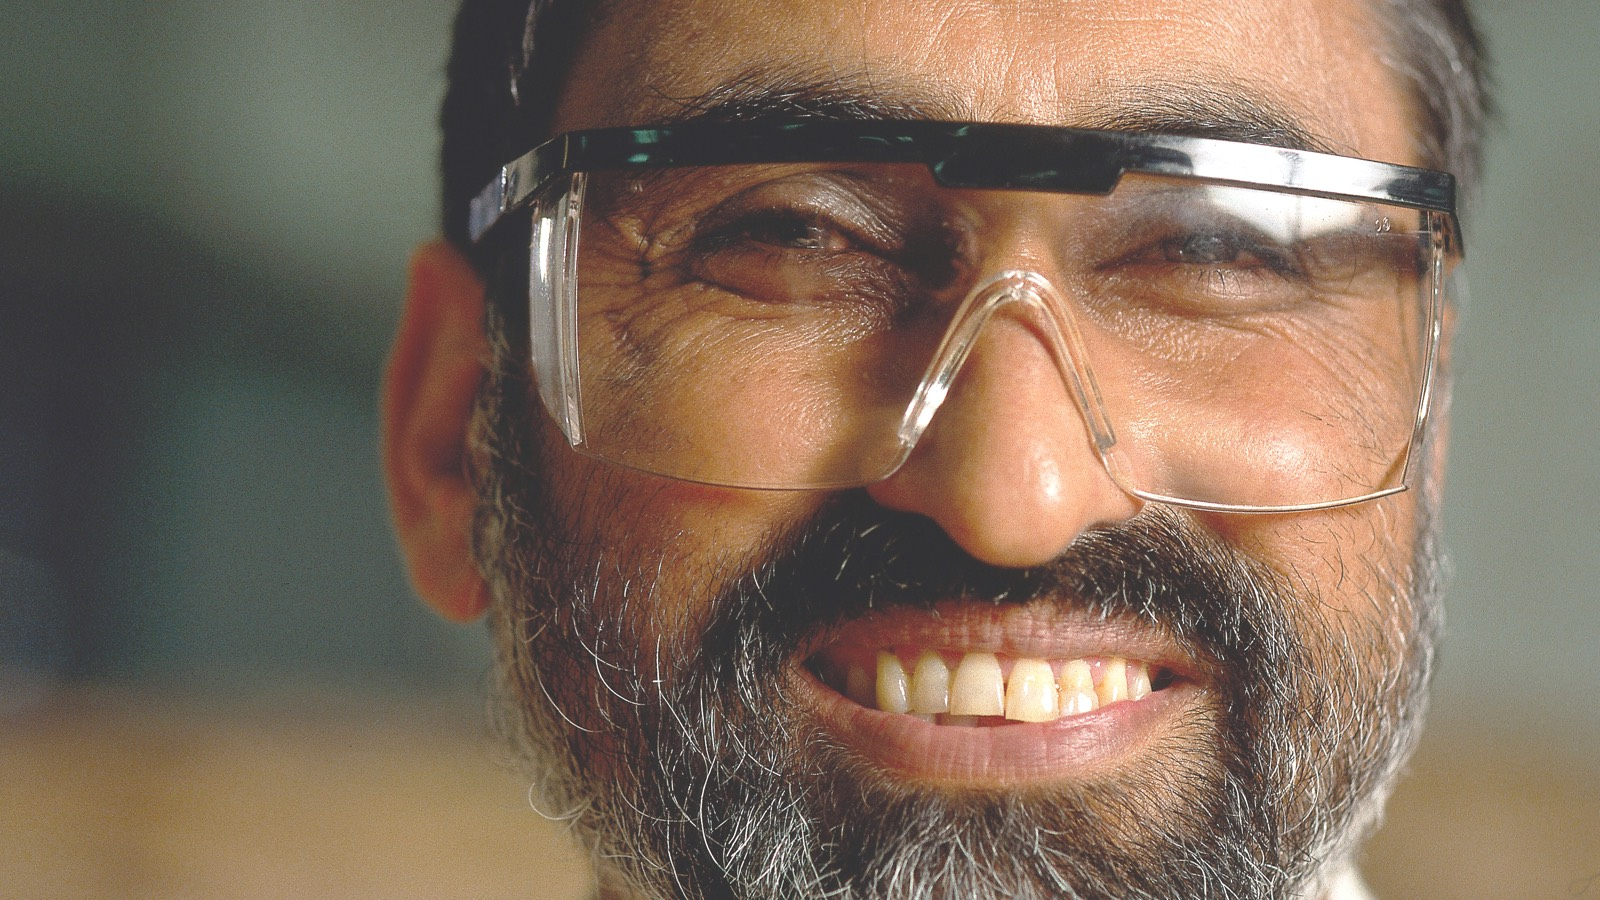 A bearded man wearing safety glasses stands in a factory and smiles.